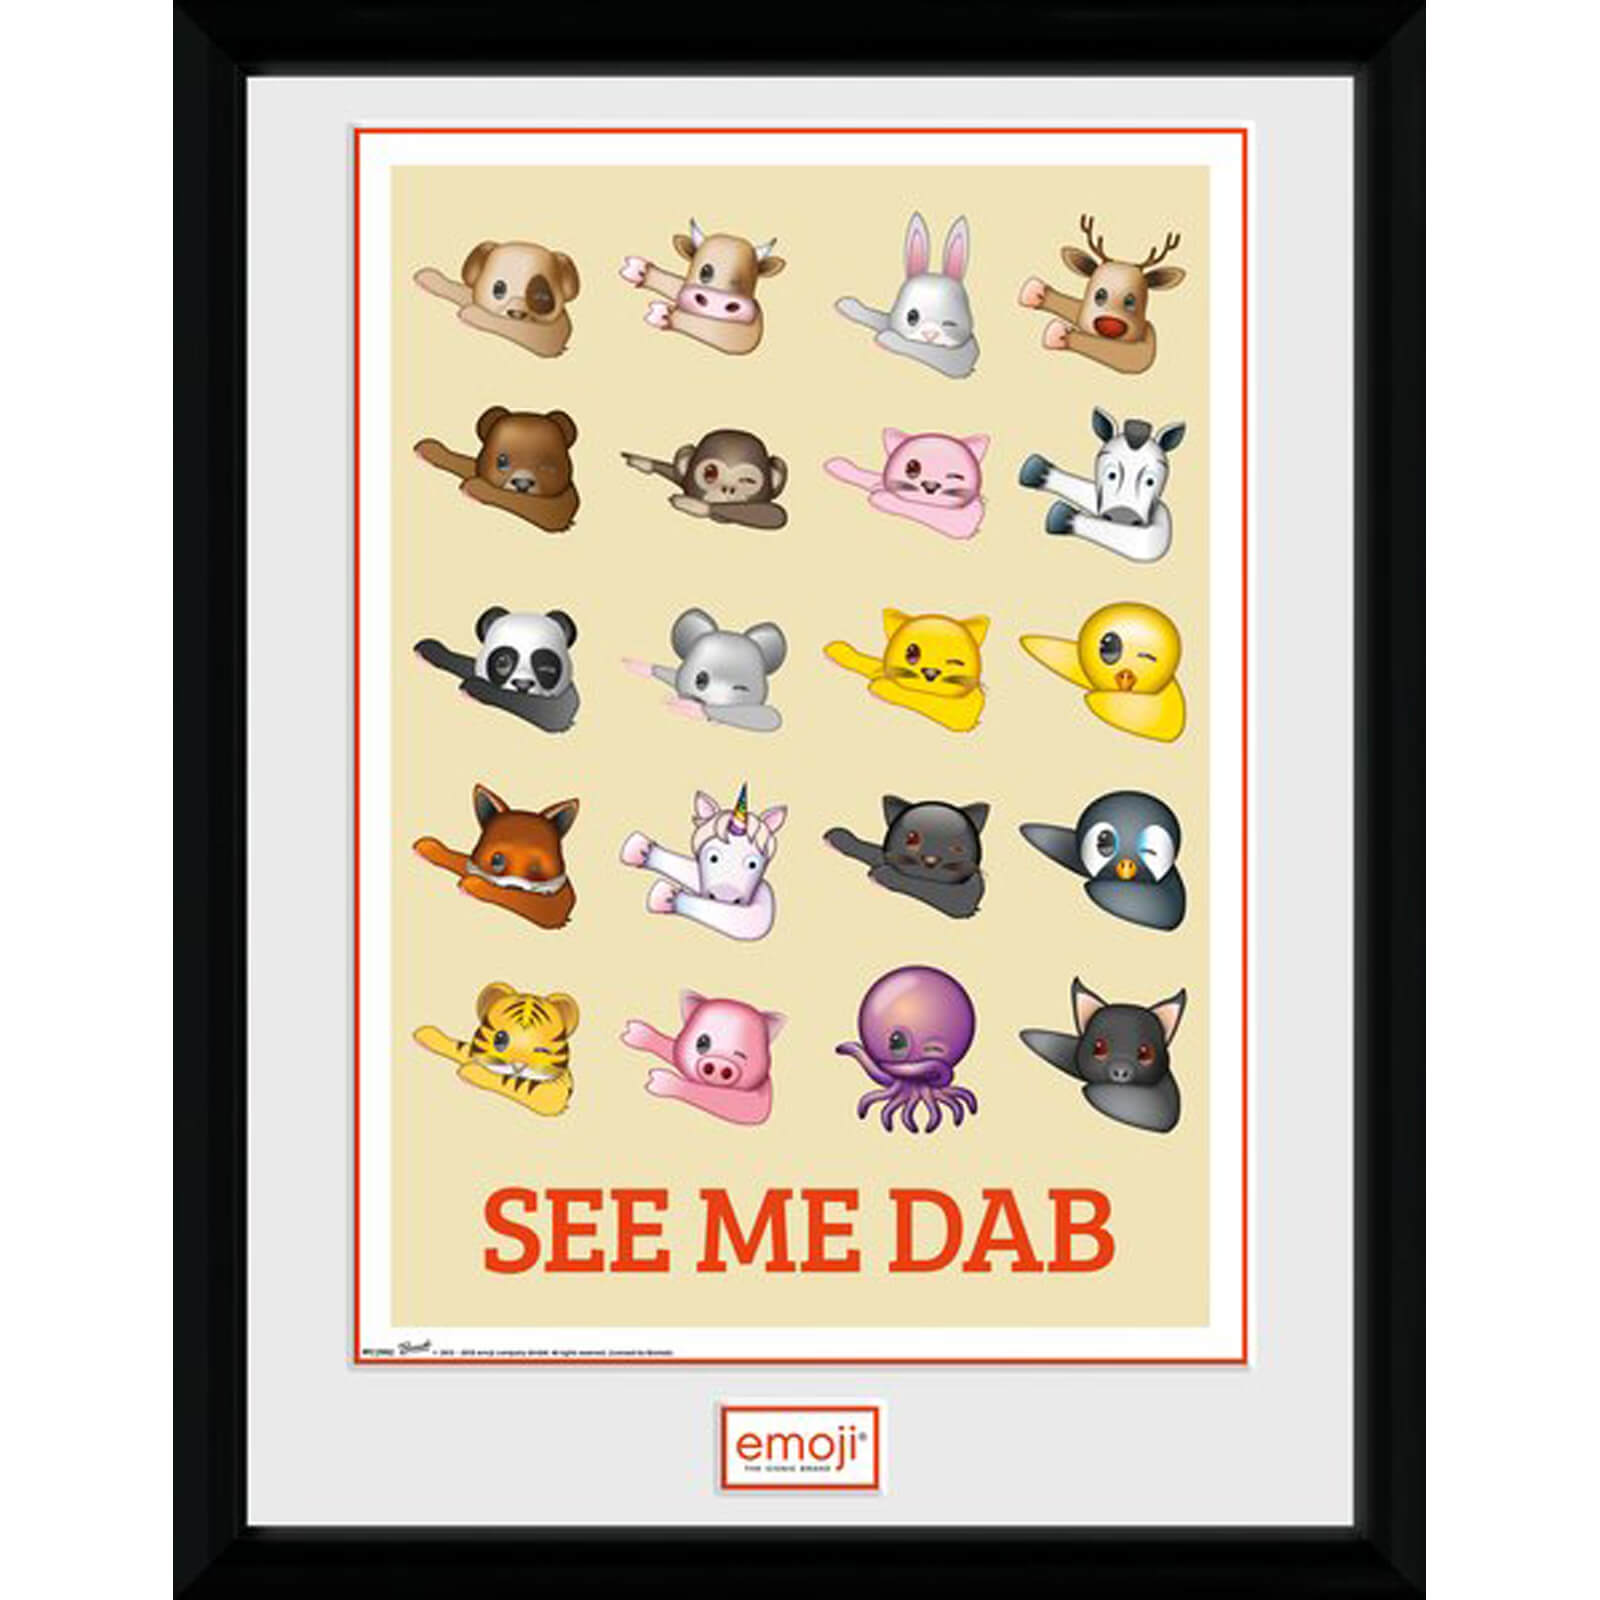 Emoji See Me Dab 12 x 16 Inches Framed Photograph